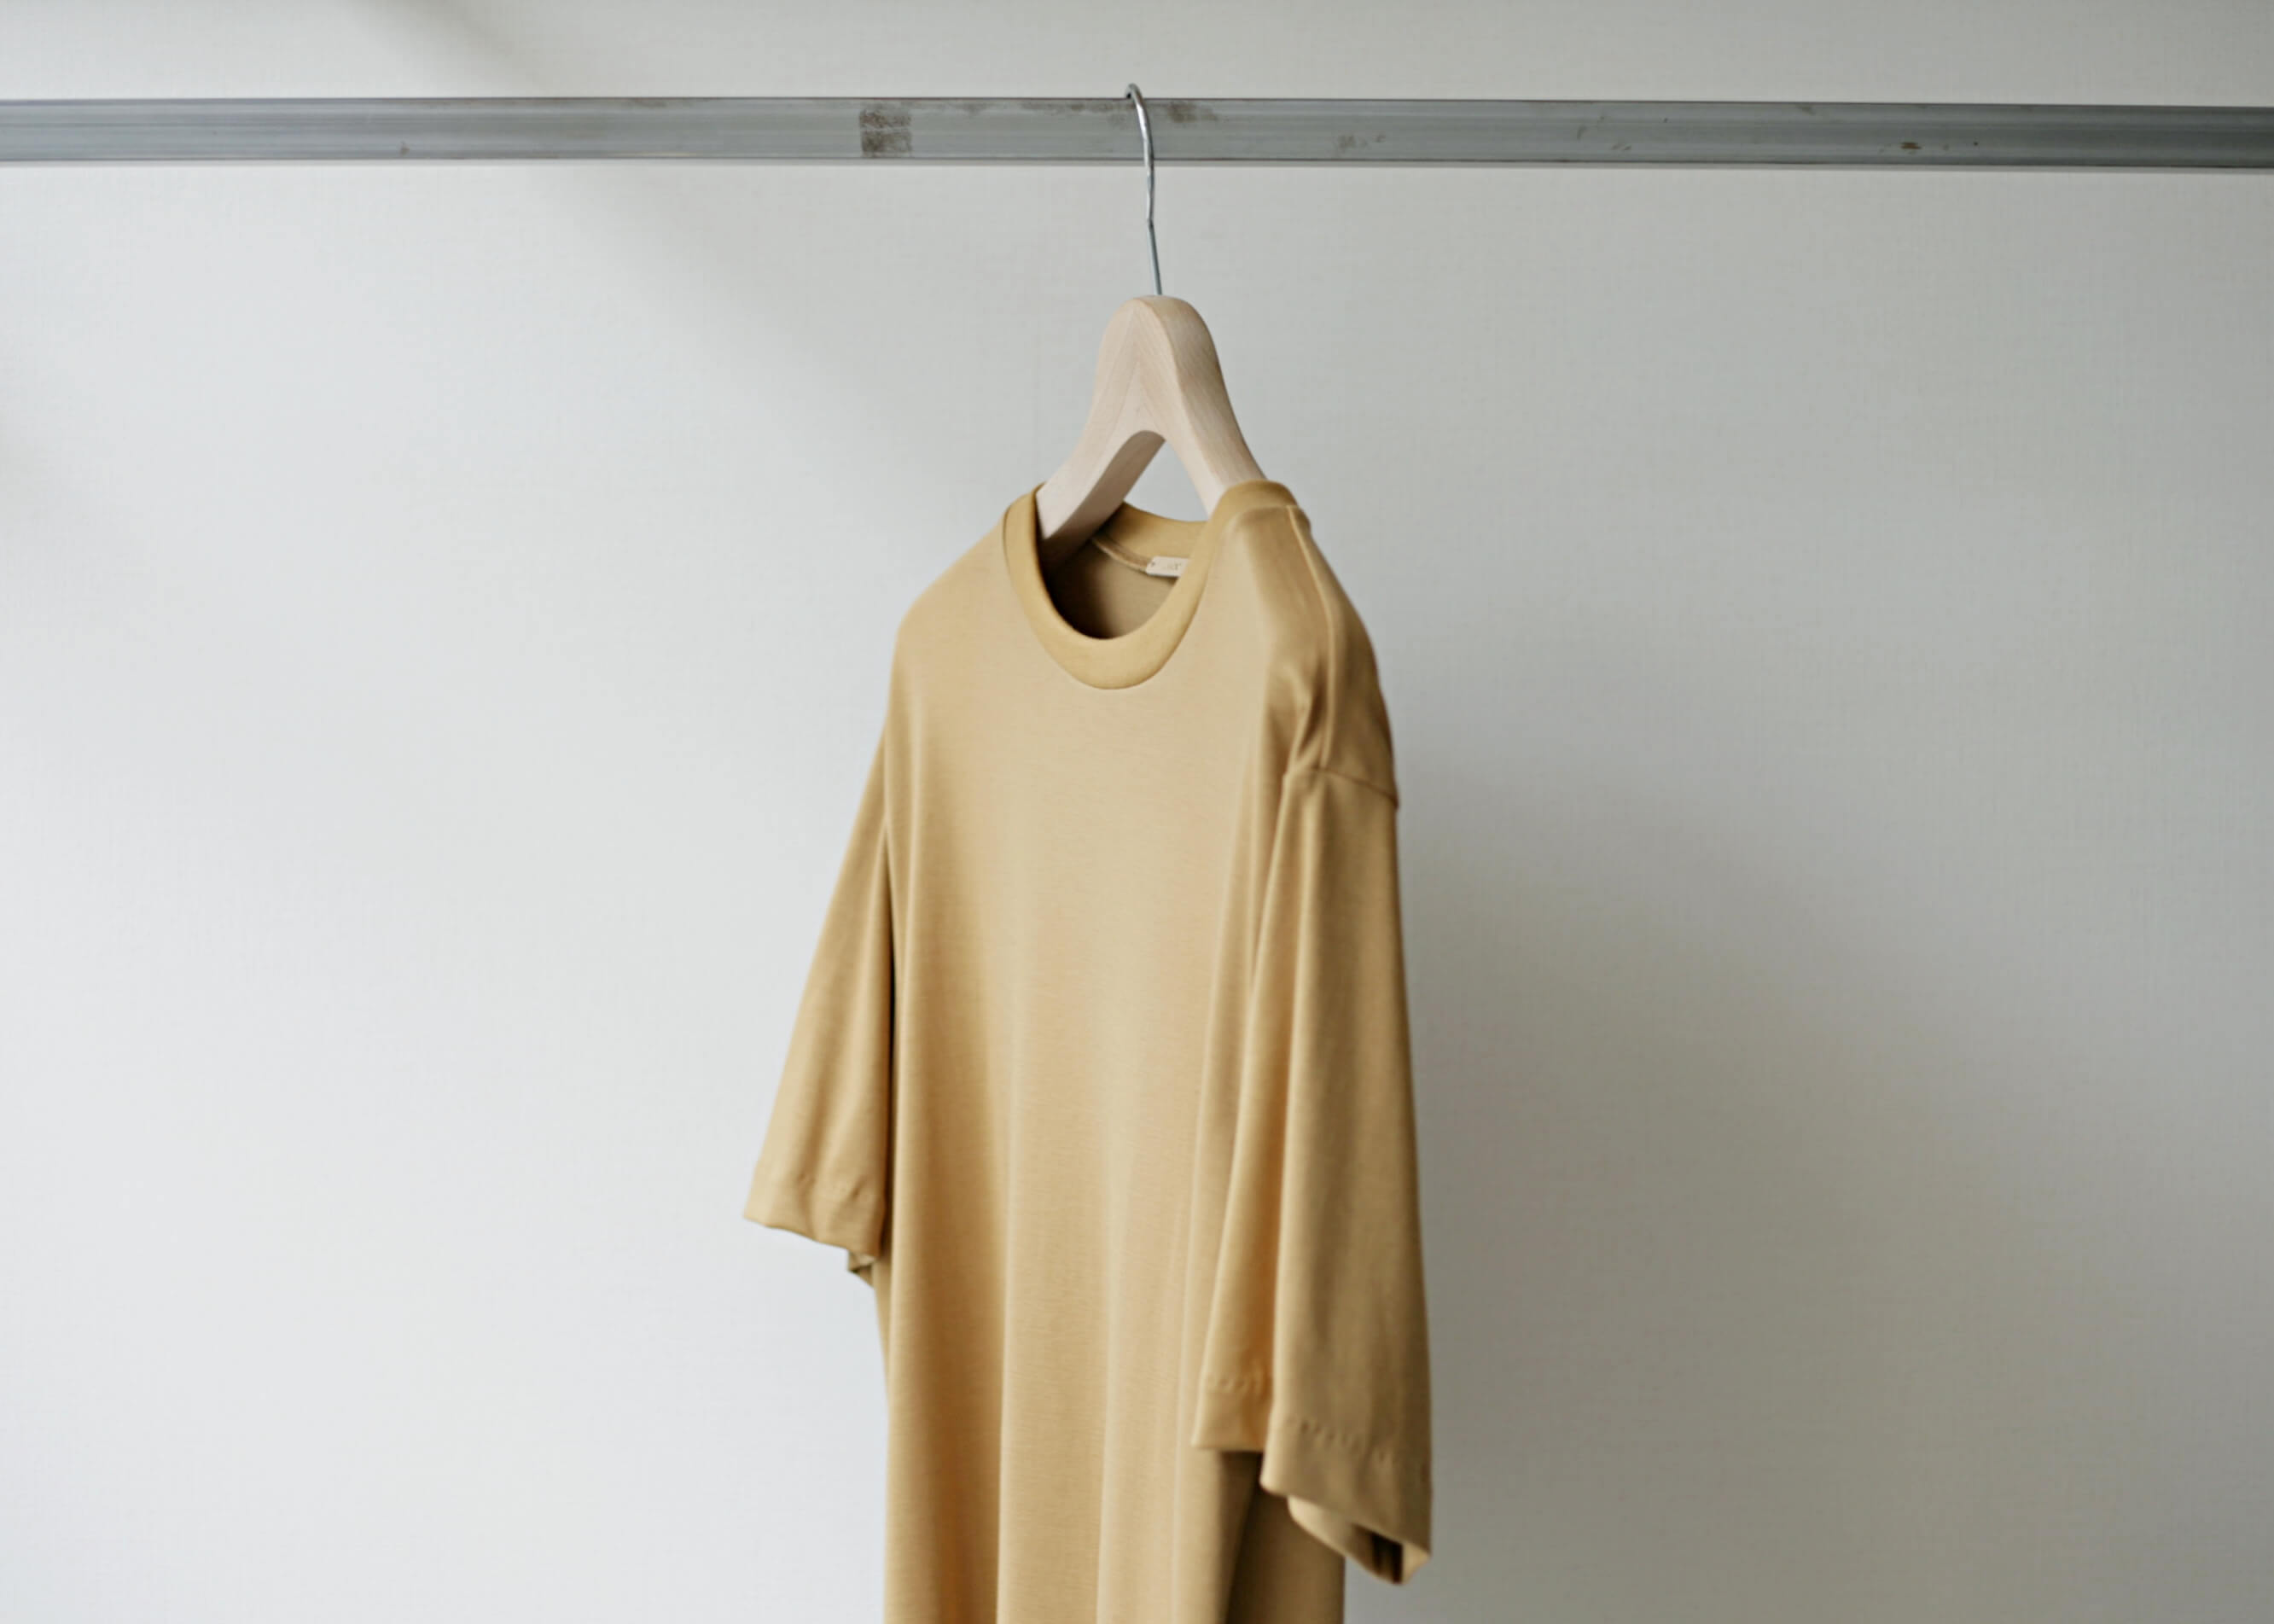 lamond suvin cotton s/s camel サイド 上半身アップ